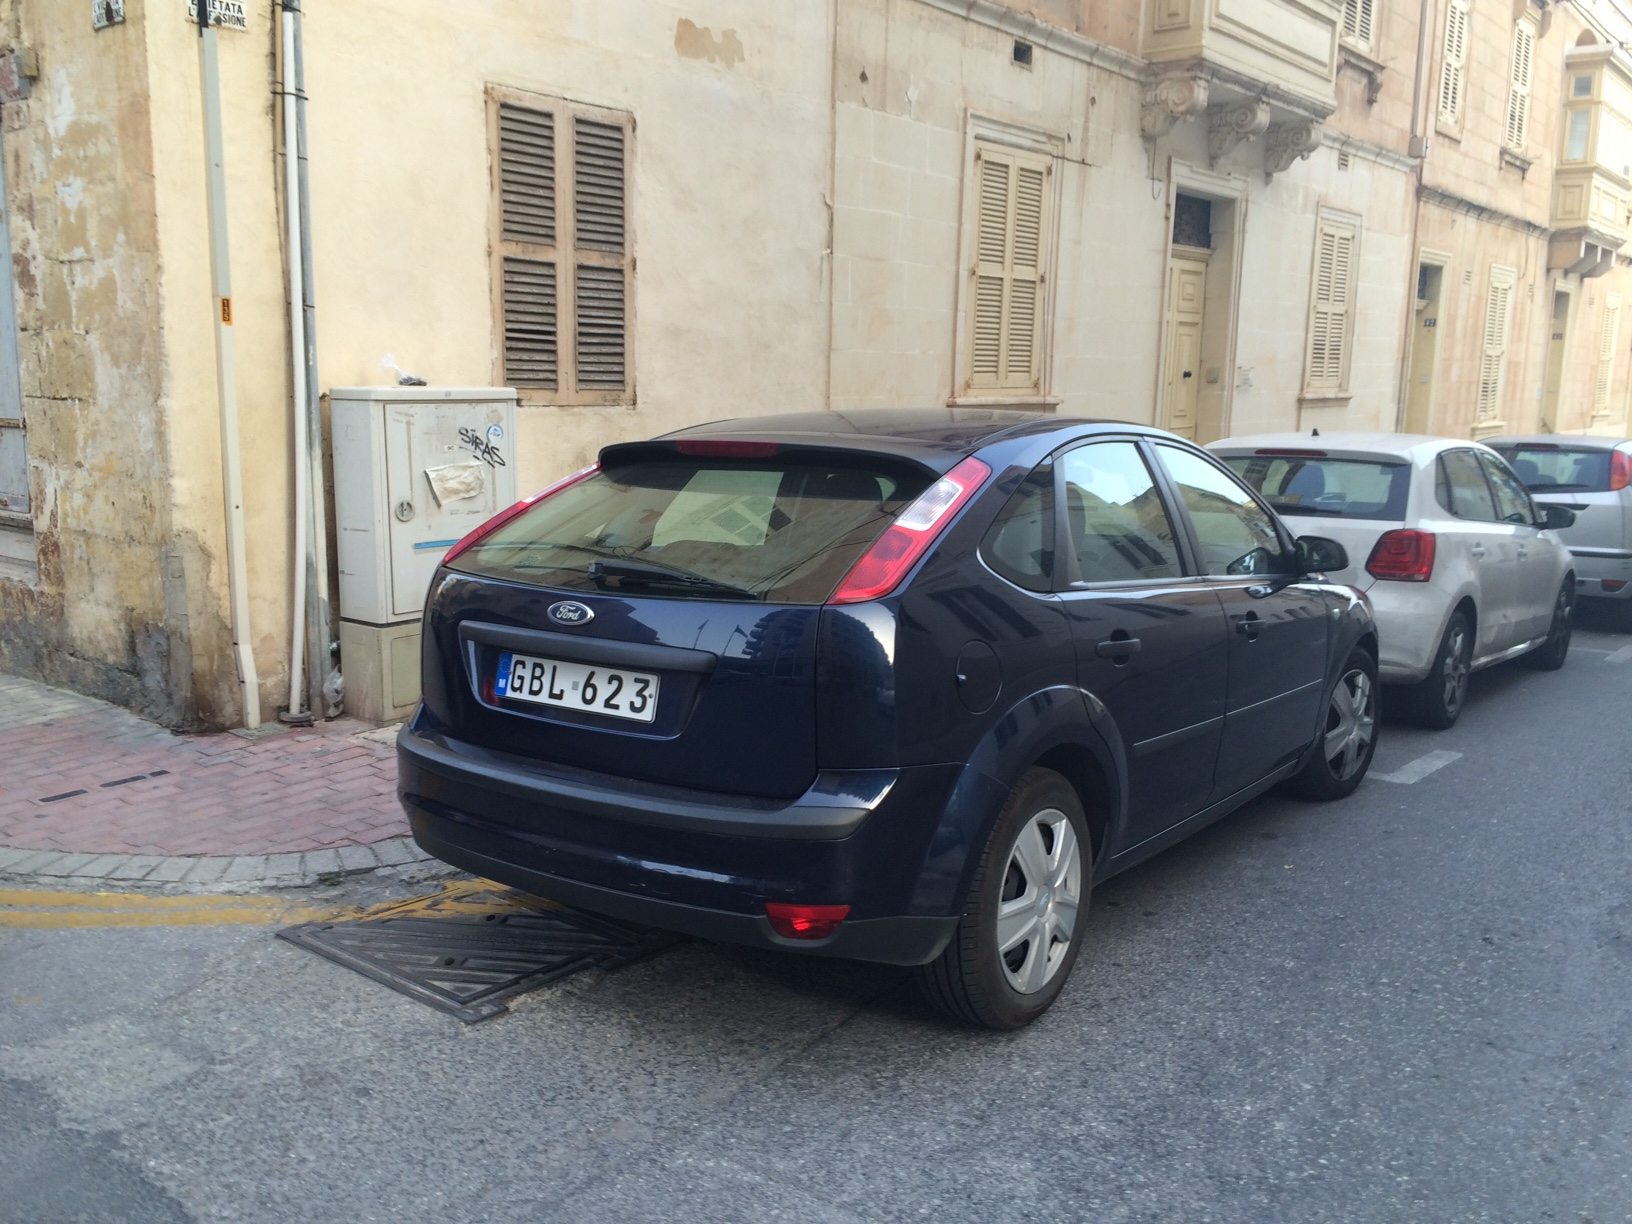 This car parked outside the flats belongs to Jonathan Ferris, who heads the Economic Crimes Unit of the Malta Police.